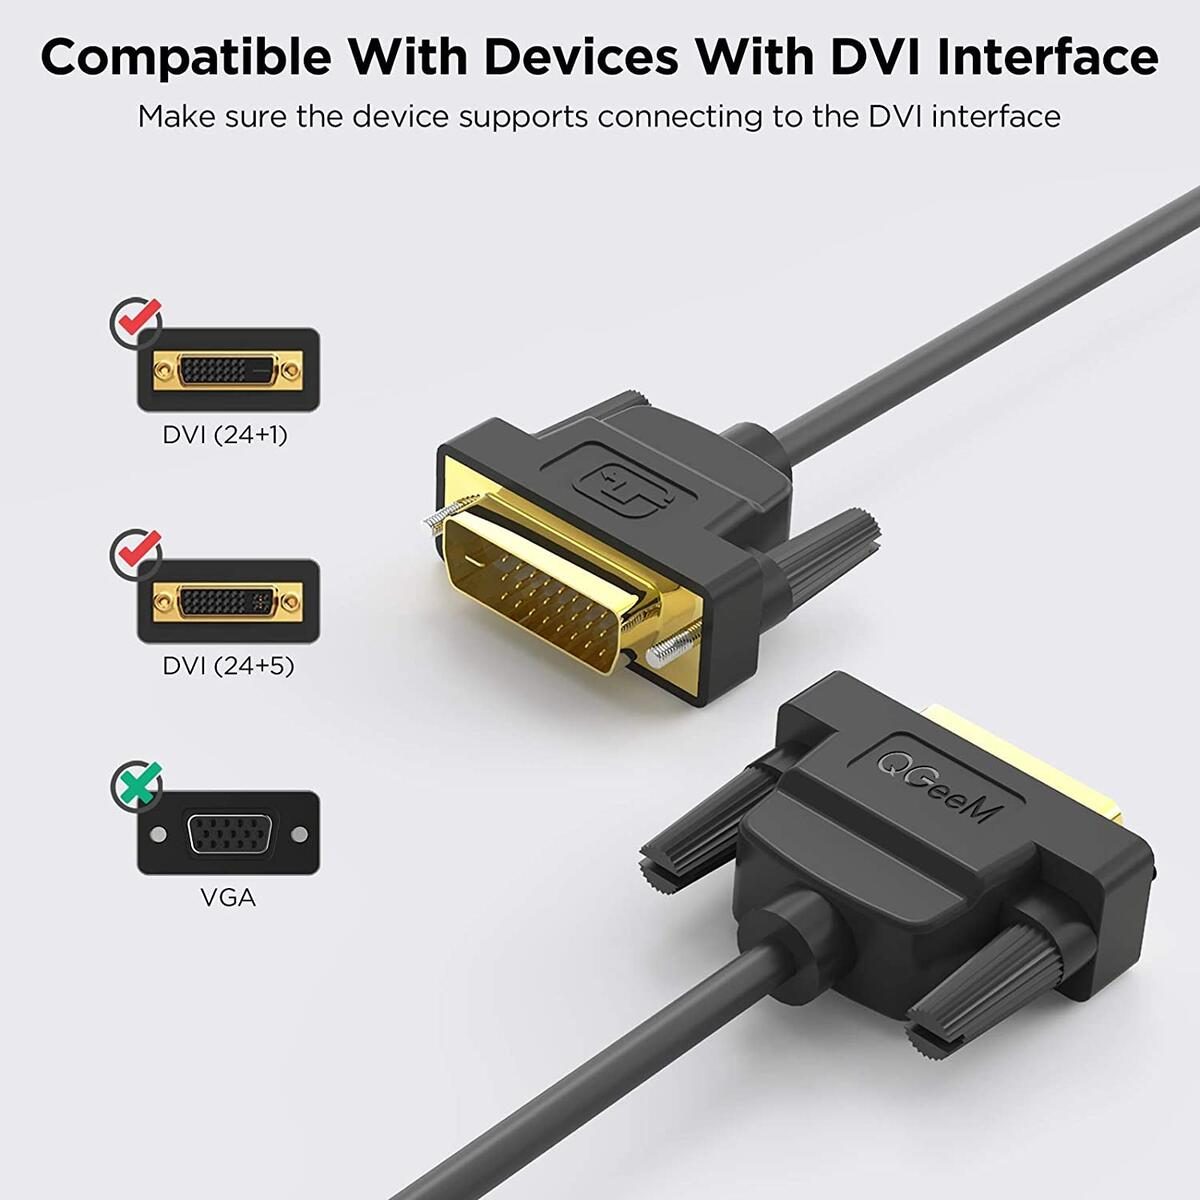 DVI to DVI cable 3FT, DVI-D 24+1 Dual Link Male to Male Digital Video Cable, Support 2560x1600 for Laptop, Gaming, DVD, Laptop, HDTV and Projector